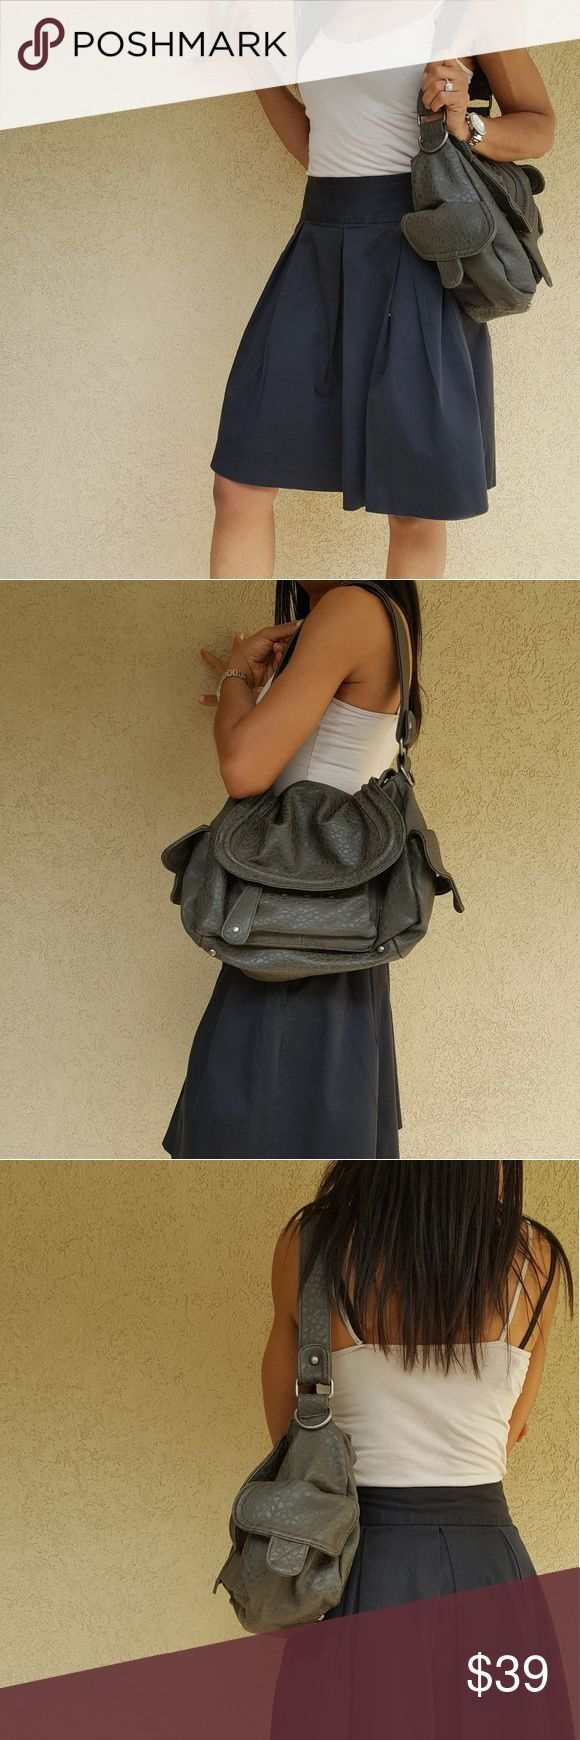 Ecote' Flap Faux Croc Hobo Bag Ecote' by Urban Outfitters  Army Green Faux Croc Hobo Purse Oversized Flap Covers Top Zip Features Flap Covered Side Pockets Front & Back Zipper Pockets Includes Extra Belt for CrossBody Style Beautiful Colorful Interior  **NWOT** Urban Outfitters Bags Hobos